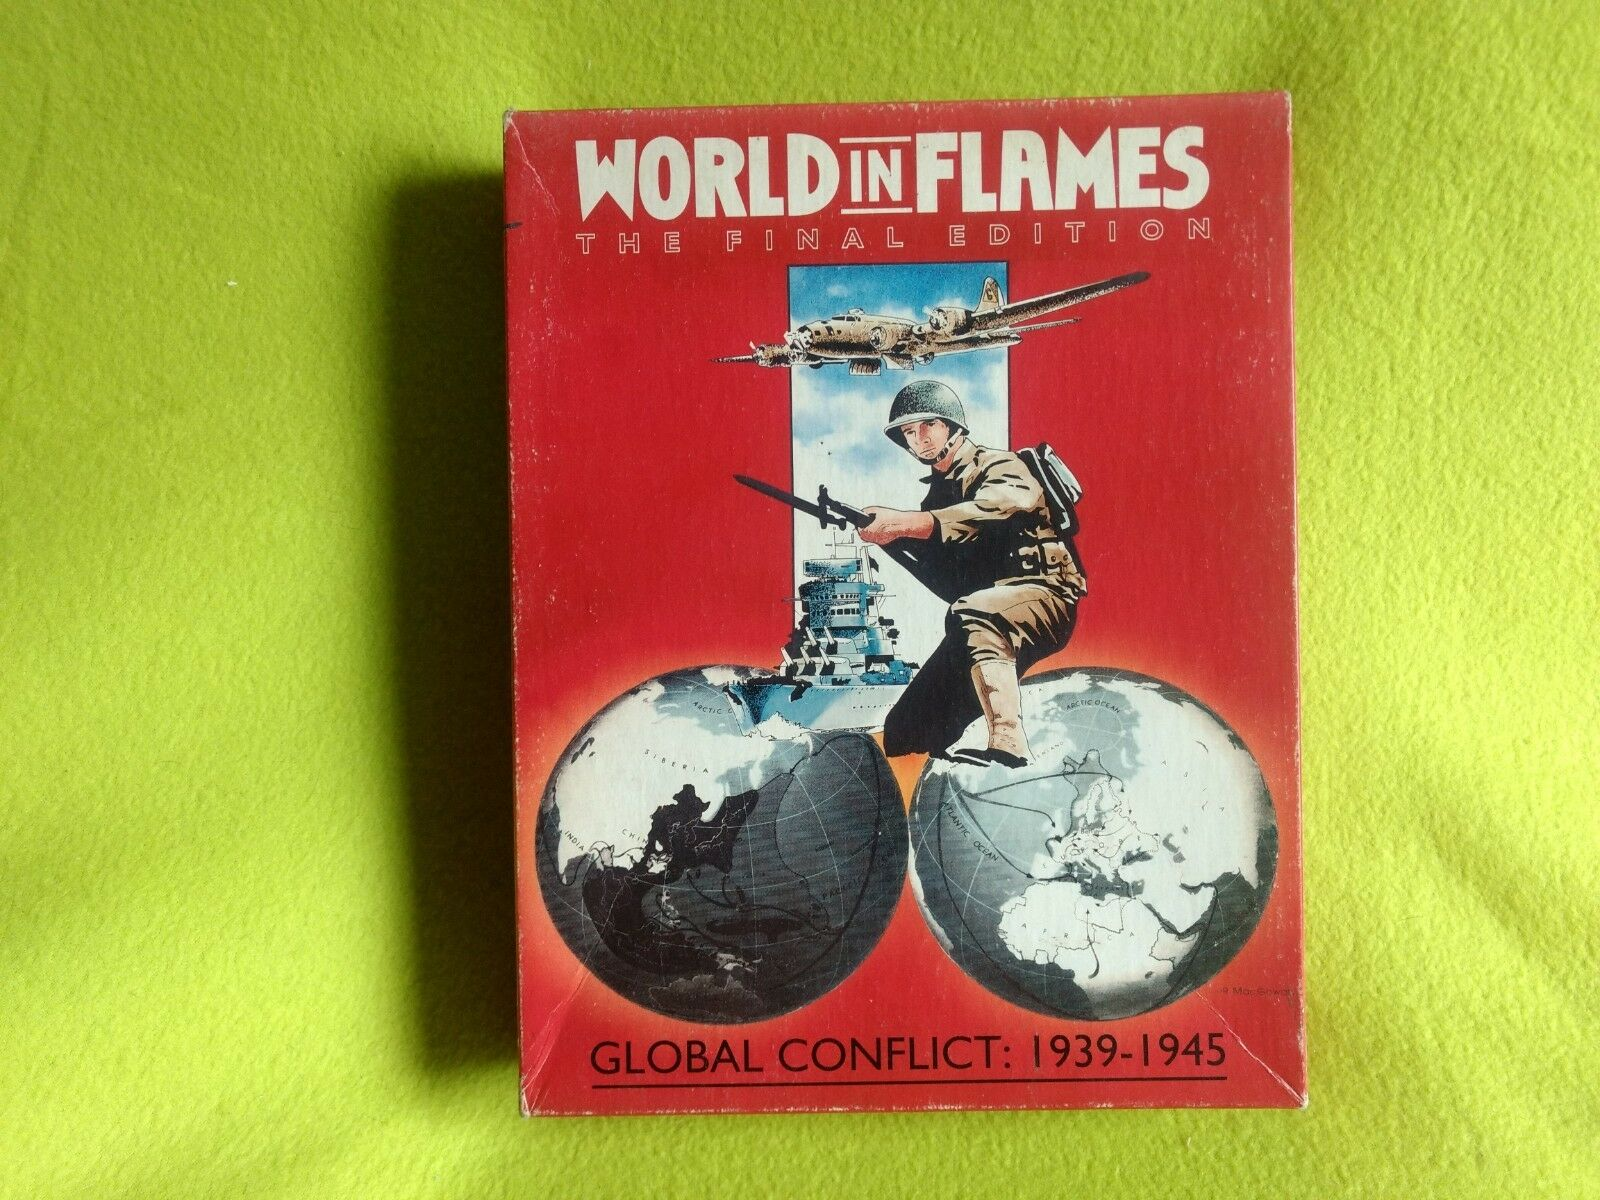 WORLD IN FLAMES THE FINAL EDITION  Ships in Flames wargame tabletop Australian